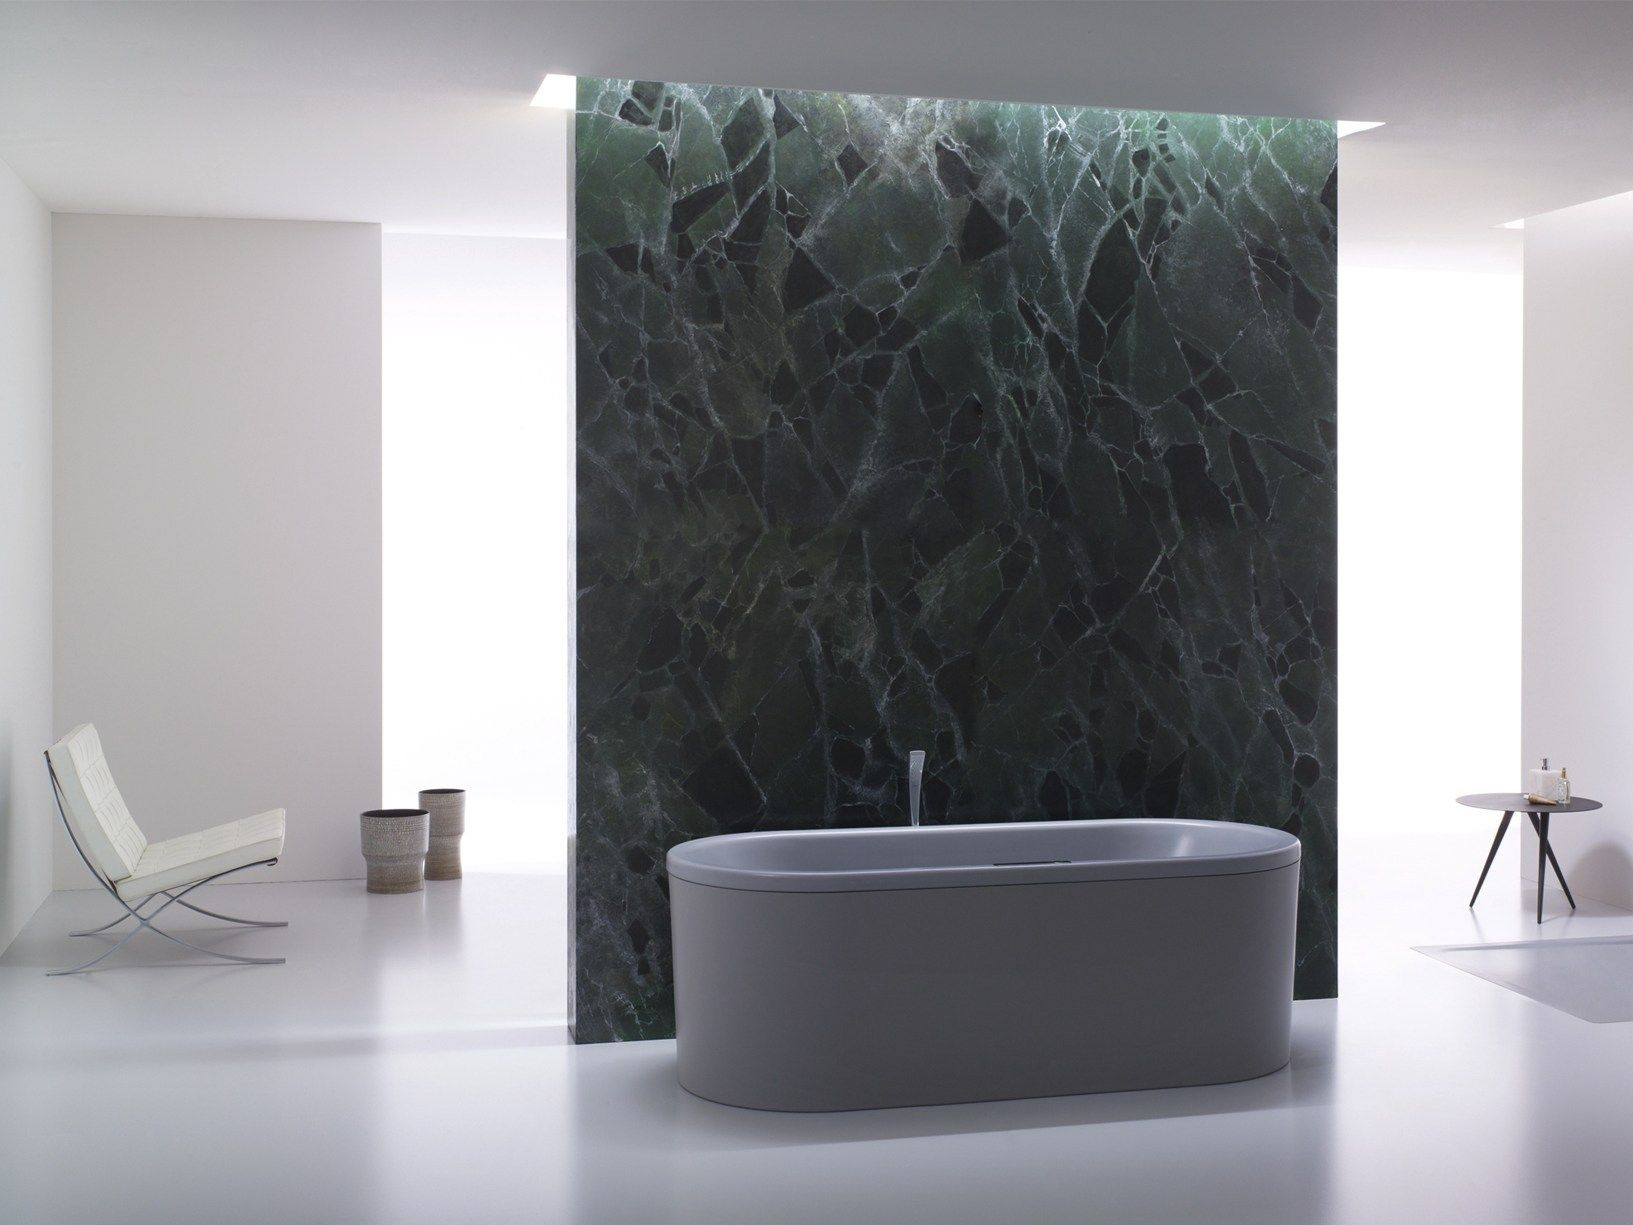 Vasca Da Bagno Kaldewei Dimensioni : Interior innovation awards per kaldewei